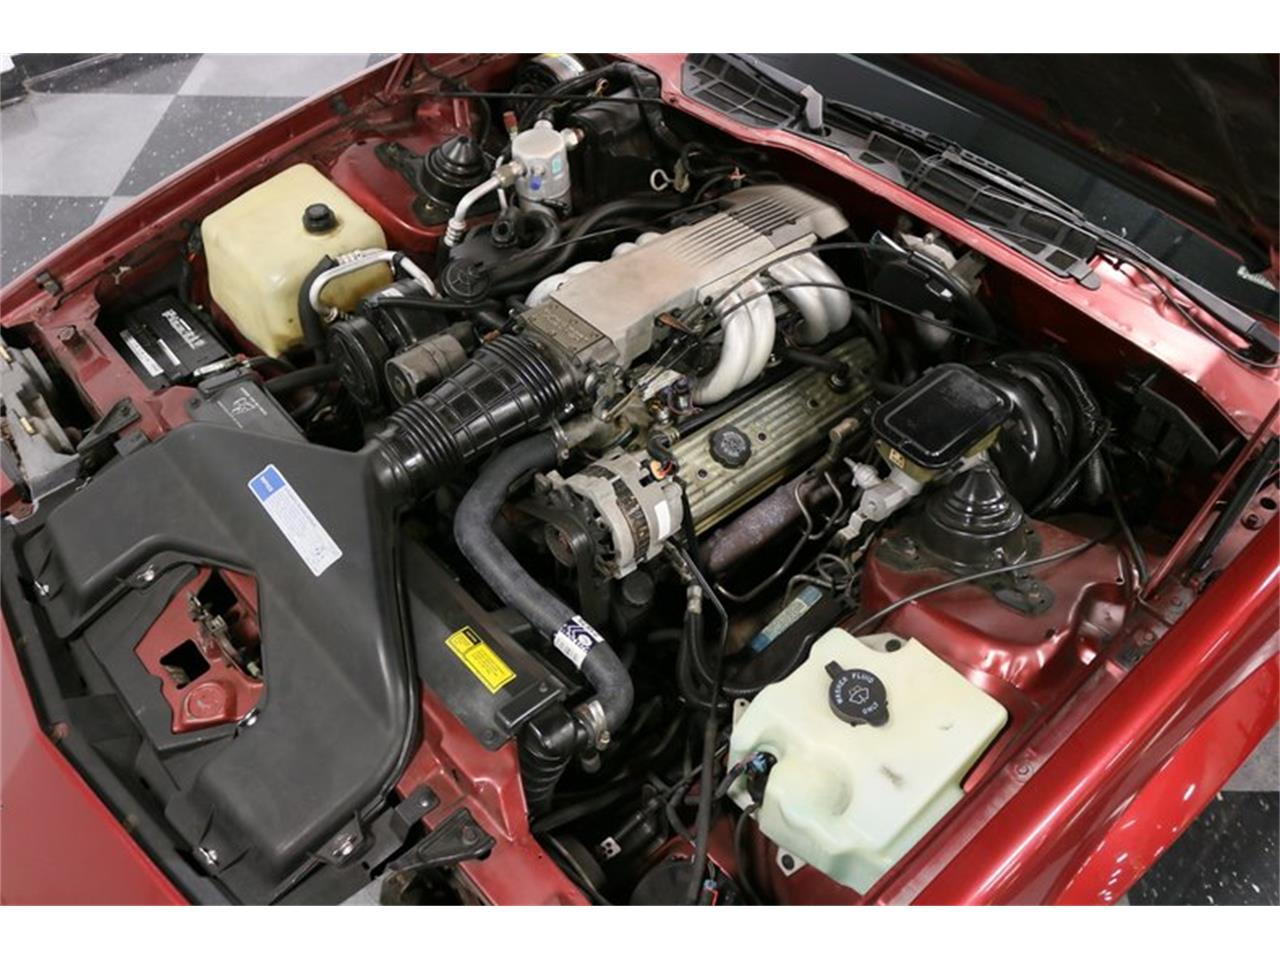 Large Picture of '91 Camaro - $11,995.00 Offered by Streetside Classics - Dallas / Fort Worth - PBLJ